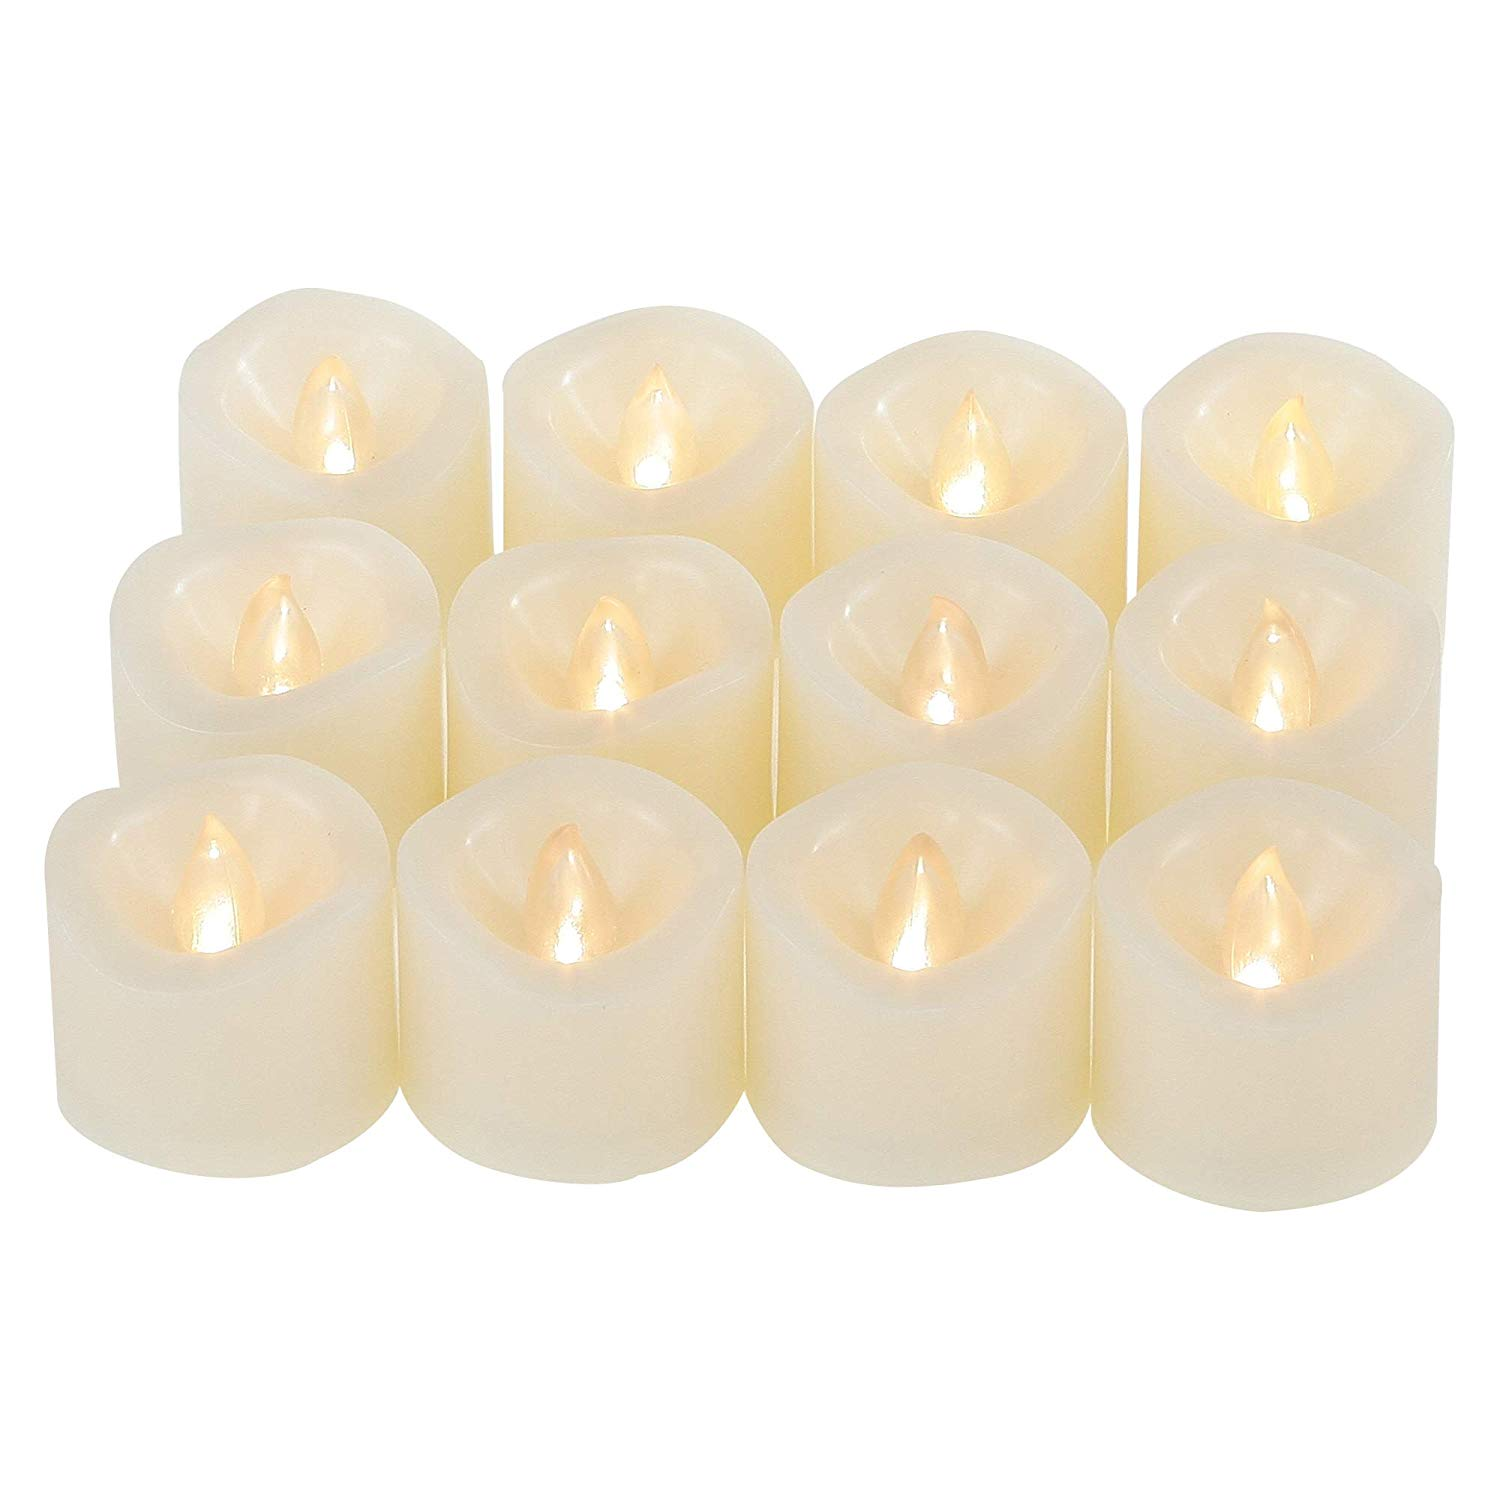 12pcs Flameless LED Tea Light with Timer Battery Operated Flickering Votive Candles for Thanksgiving Christmas Festival Celebration Decor Electric Amber Yellow Bulb Light Freewander